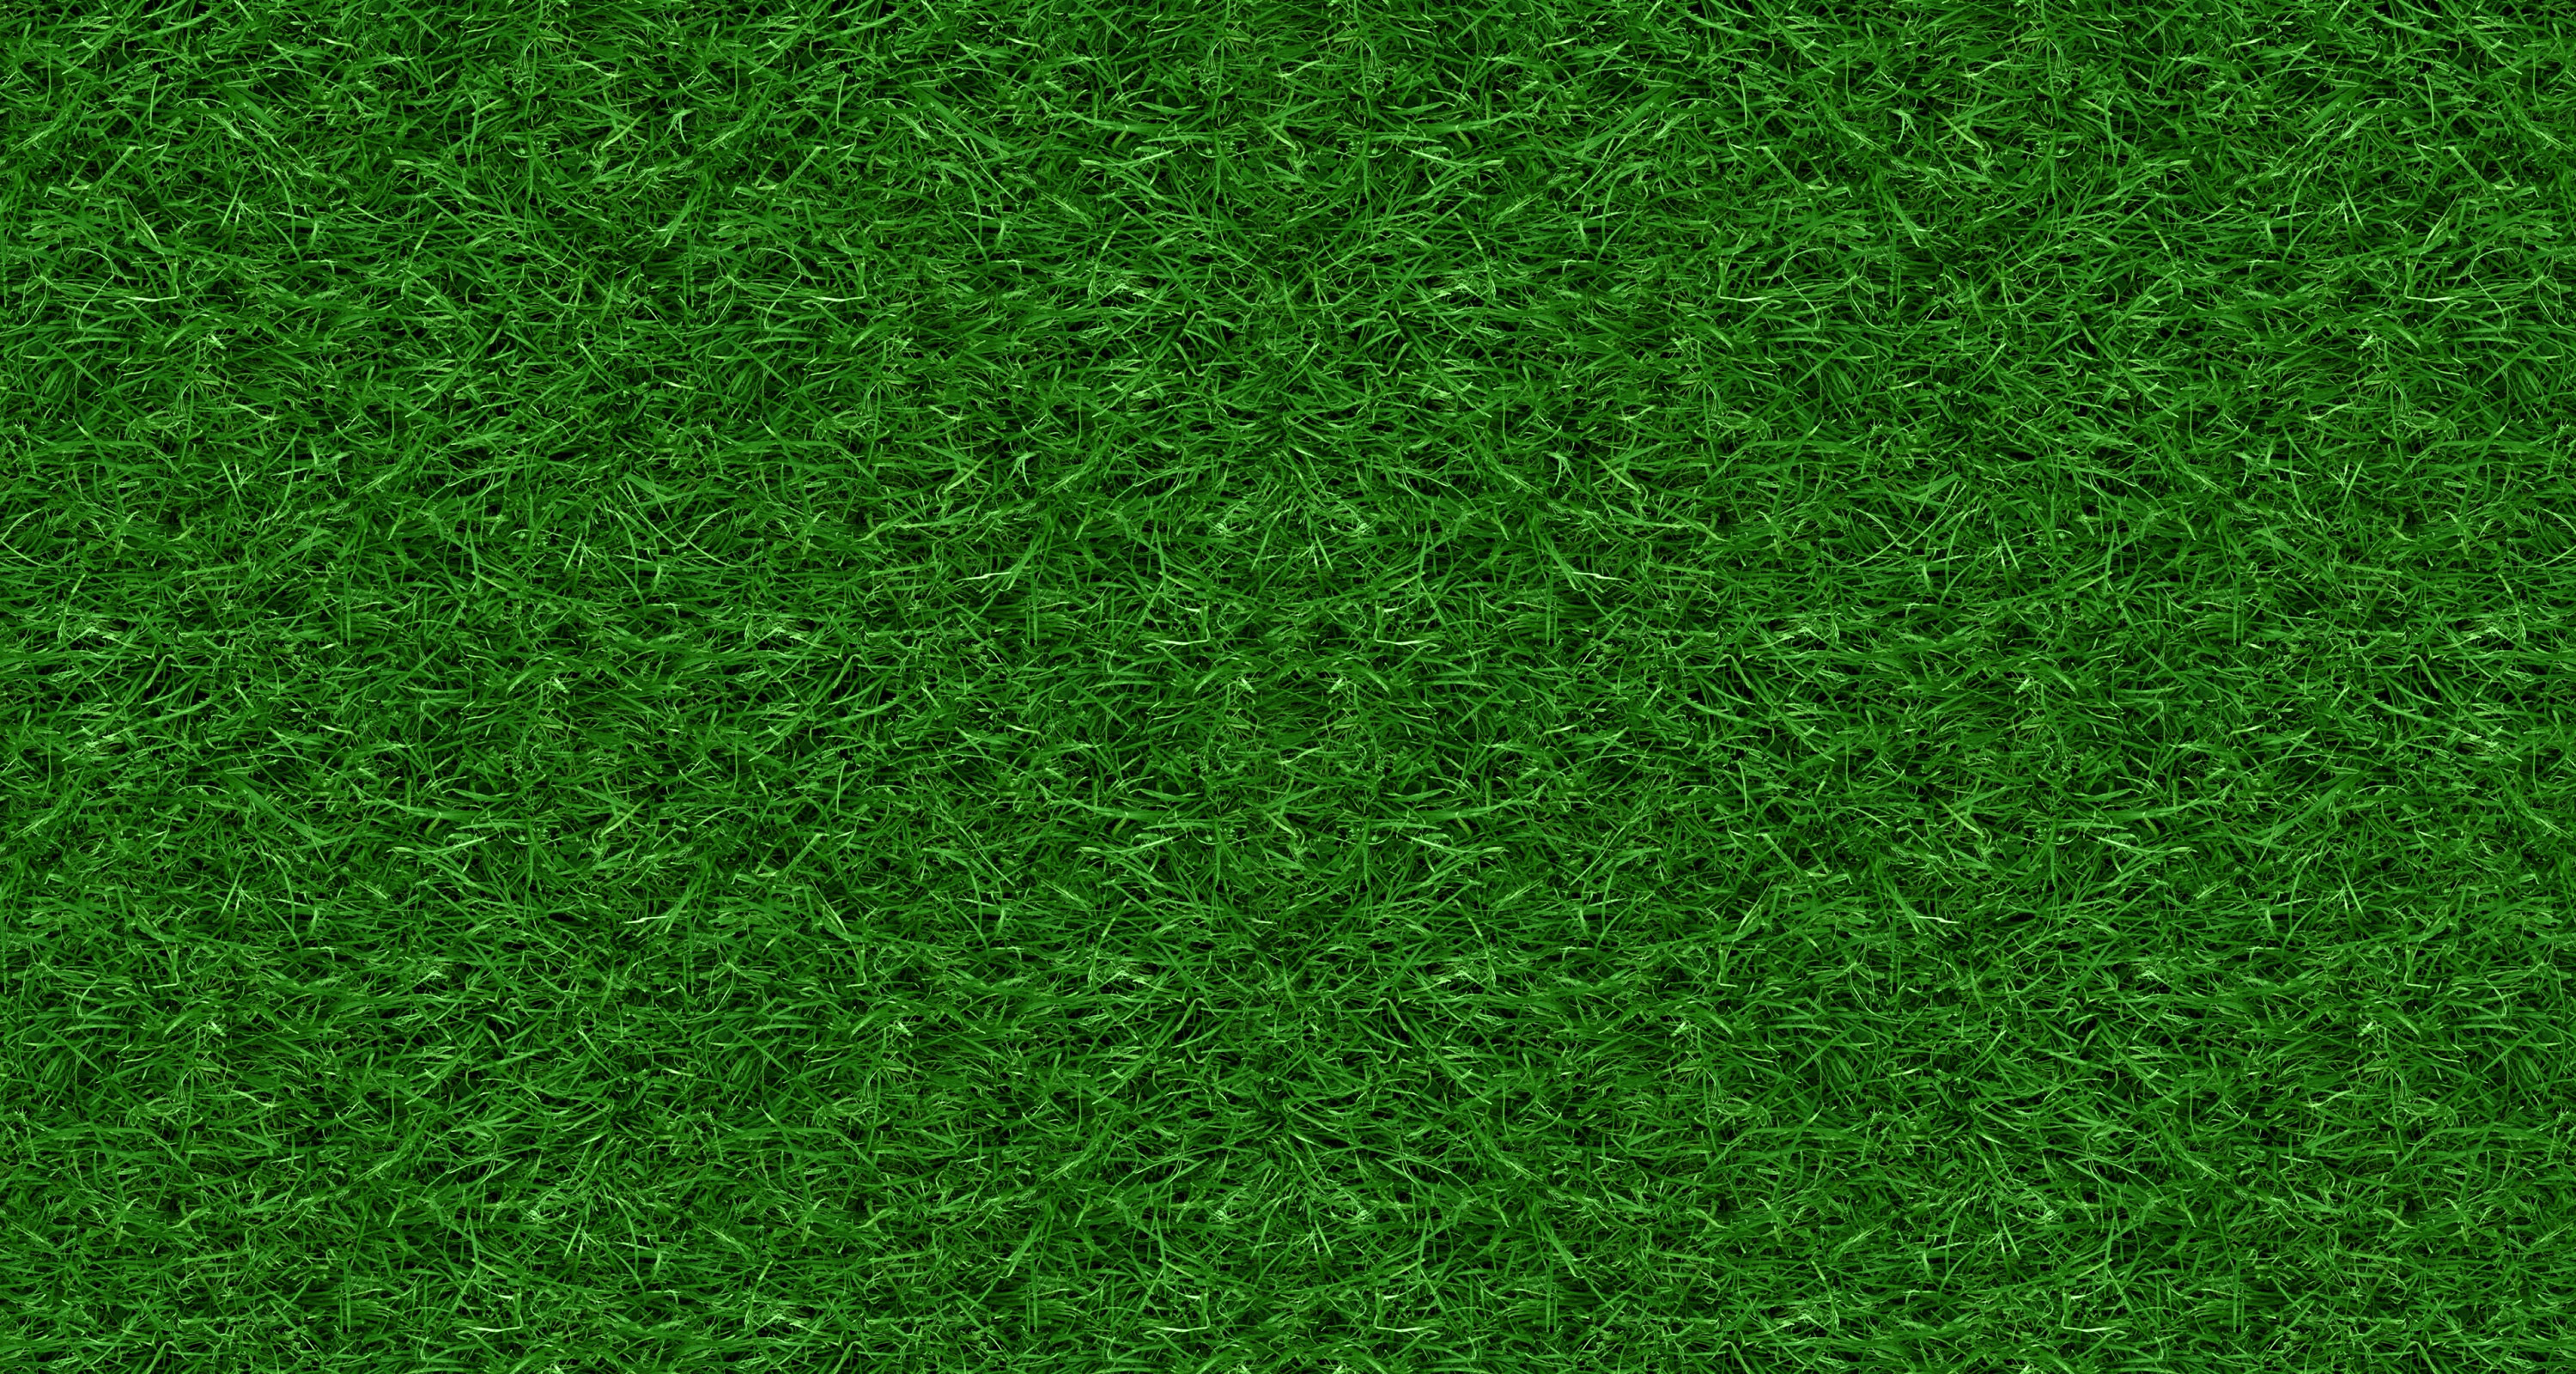 Earth Animated Wallpaper Green Ground Texture Free Textures All Design Creative